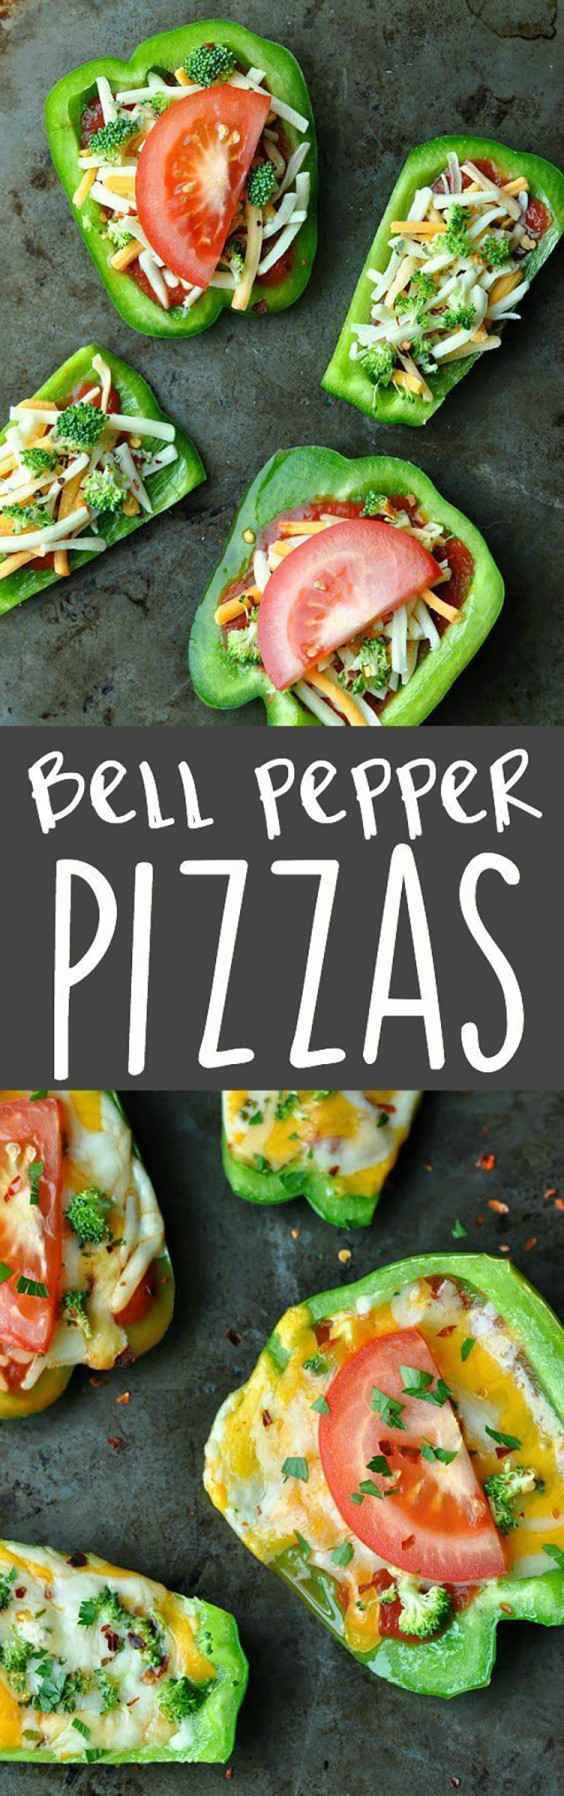 Healthy Lunch Ideas: Bell Pepper Pizzas